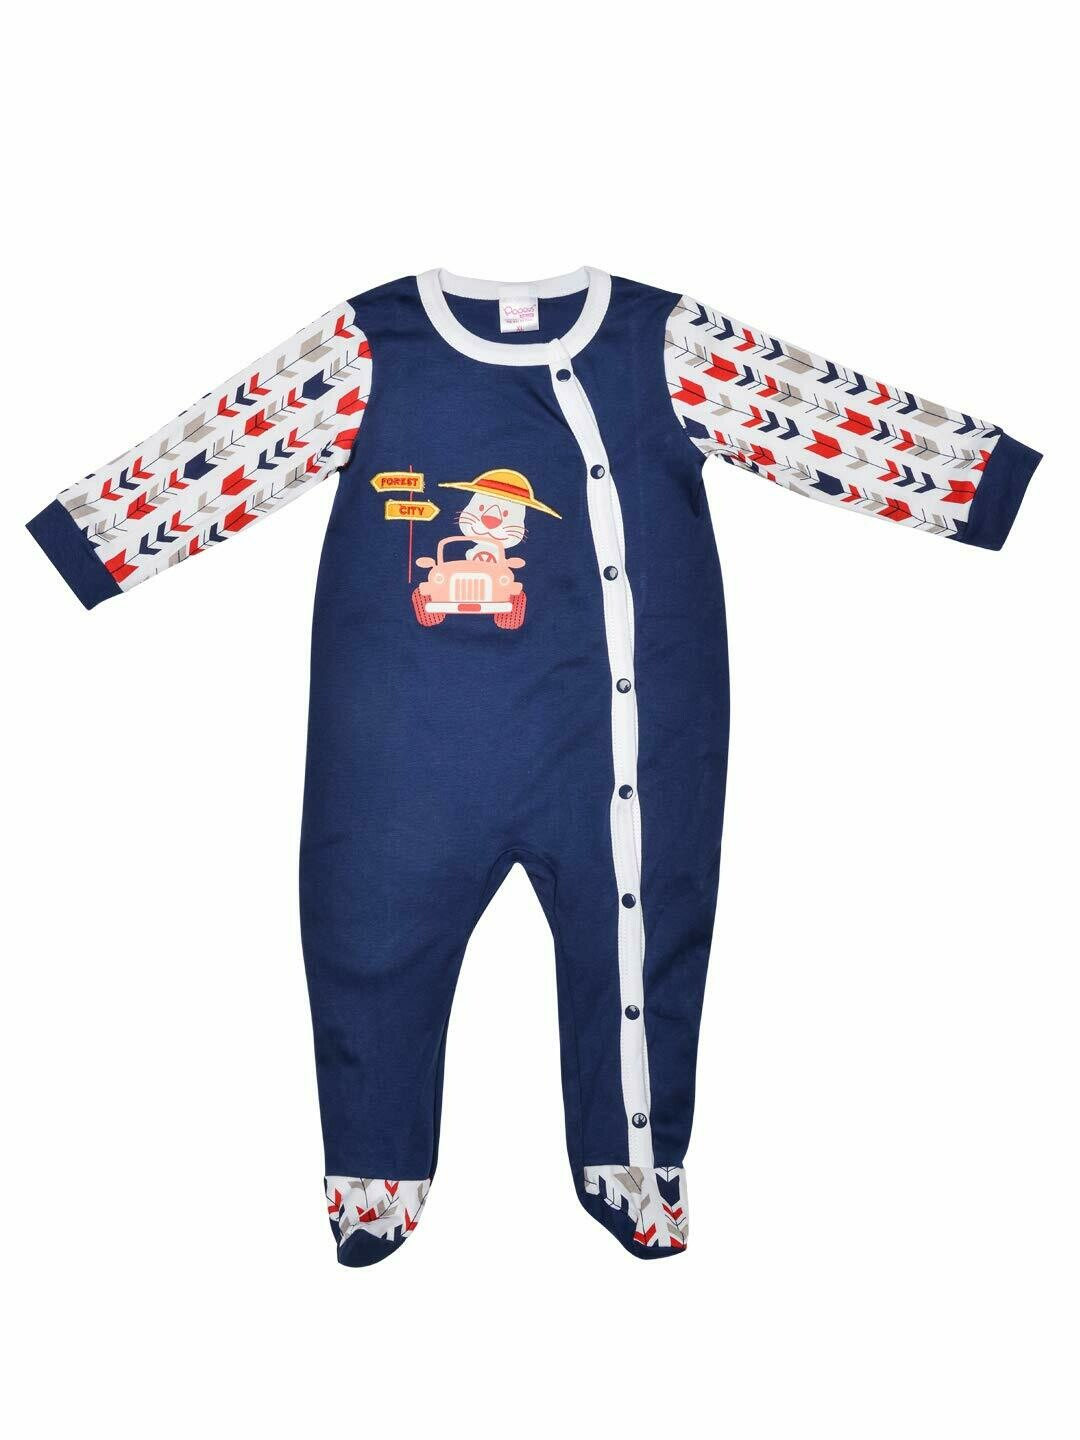 Horus Navy Blue Fullsleeves Printed Sleepsuit with Embroidery for Boys & Girls